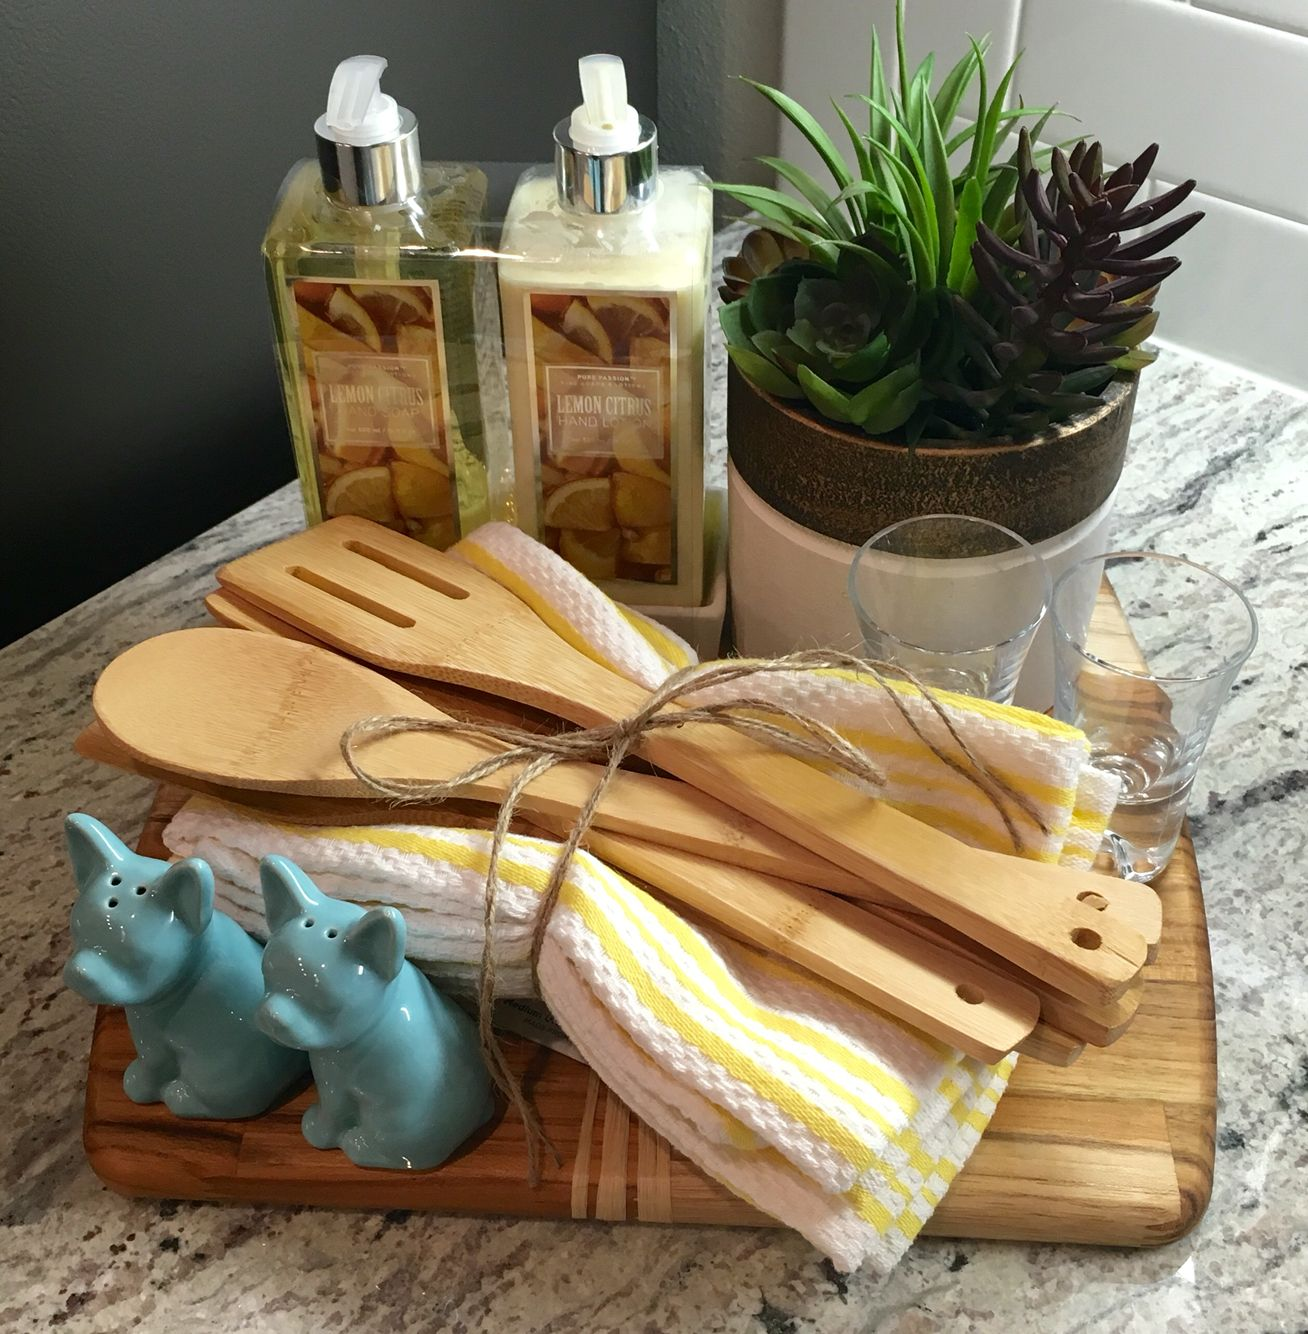 Homemade Housewarming Gift Ideas Housewarming Gift Wooden Chopping Board Hand Towels